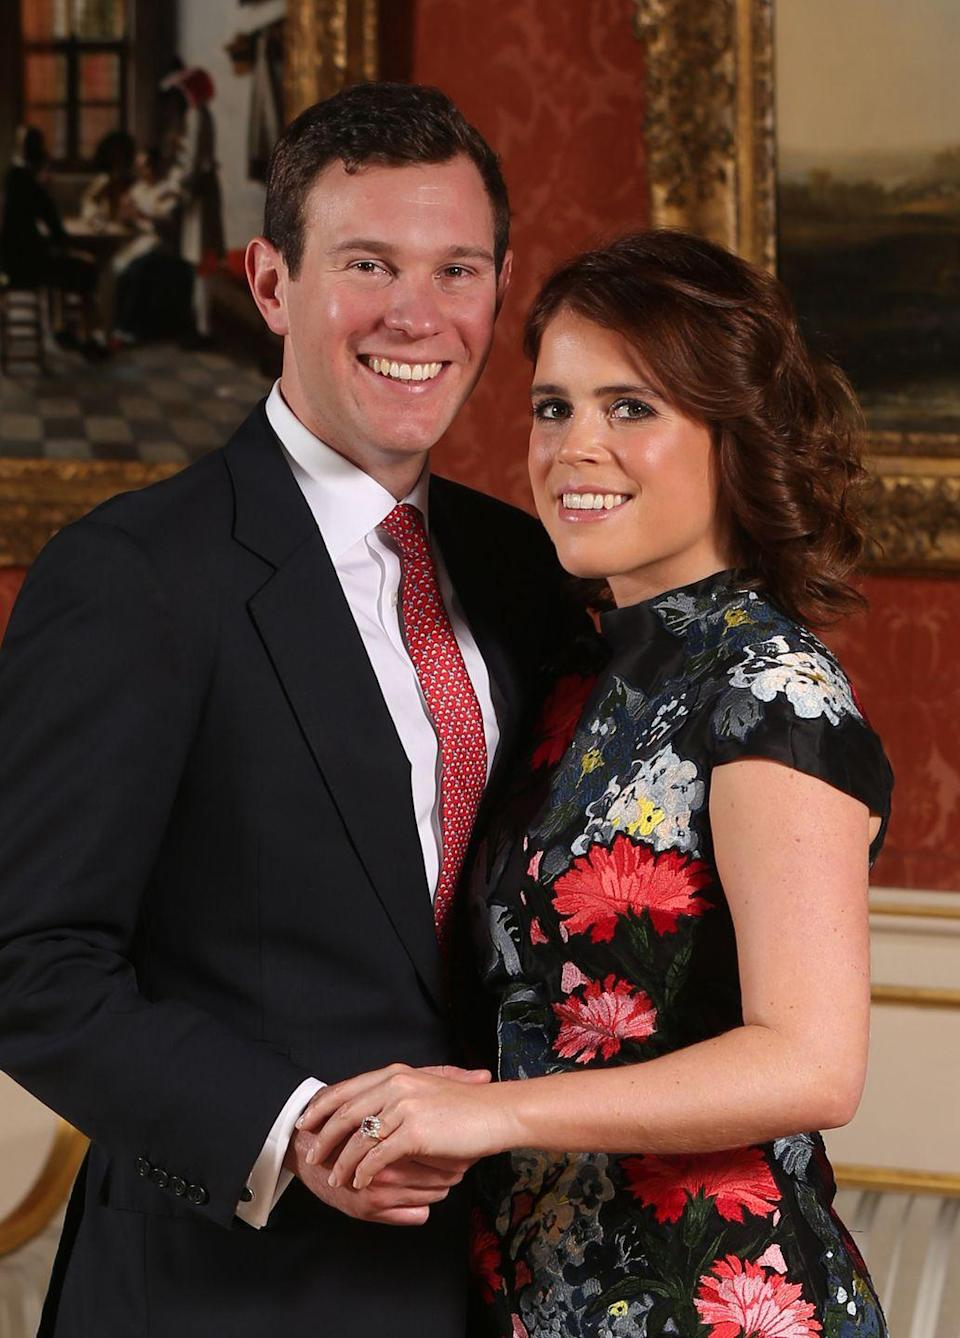 """<p>Not all sapphires are blue: In 2018, Princess Eugenie and Jack Brooksbank announced <a href=""""https://www.townandcountrymag.com/style/jewelry-and-watches/a15839418/princess-eugenie-engagement-ring/"""" rel=""""nofollow noopener"""" target=""""_blank"""" data-ylk=""""slk:their engagement"""" class=""""link rapid-noclick-resp"""">their engagement</a> with a pink padparadscha sapphire ring that seemed to have been inspired by her mother Sarah Ferguson's Burmese ruby engagement ring. </p>"""